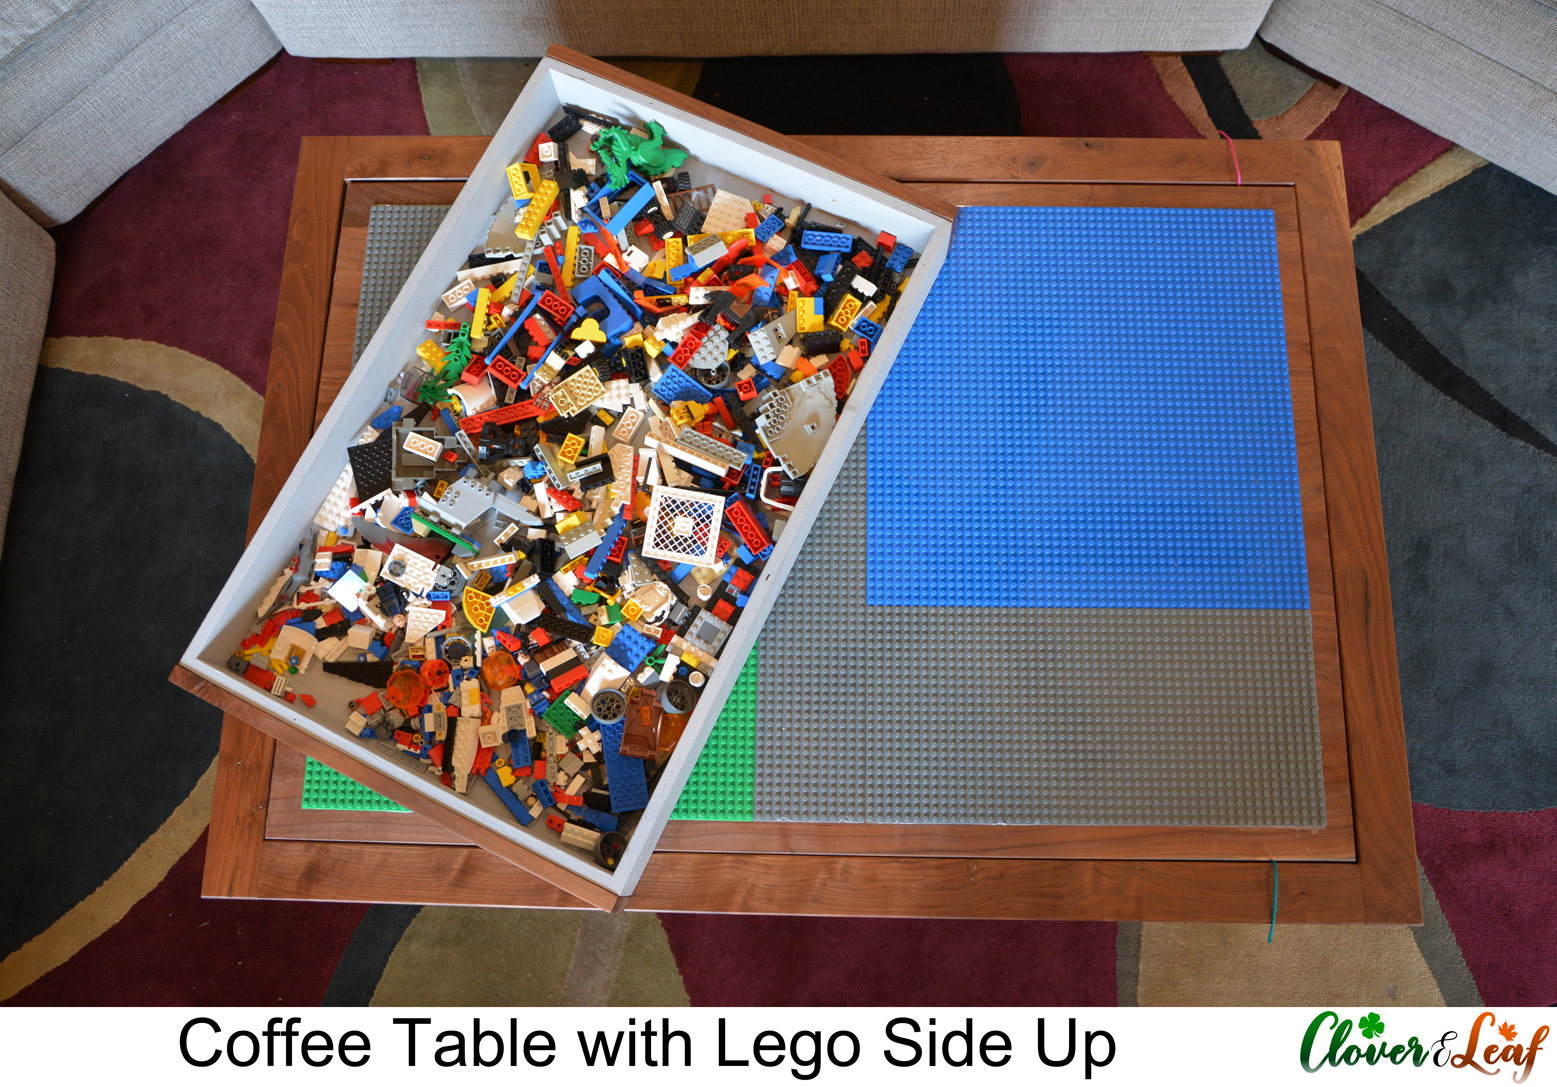 Coffee Table with Lego Side Up.jpg